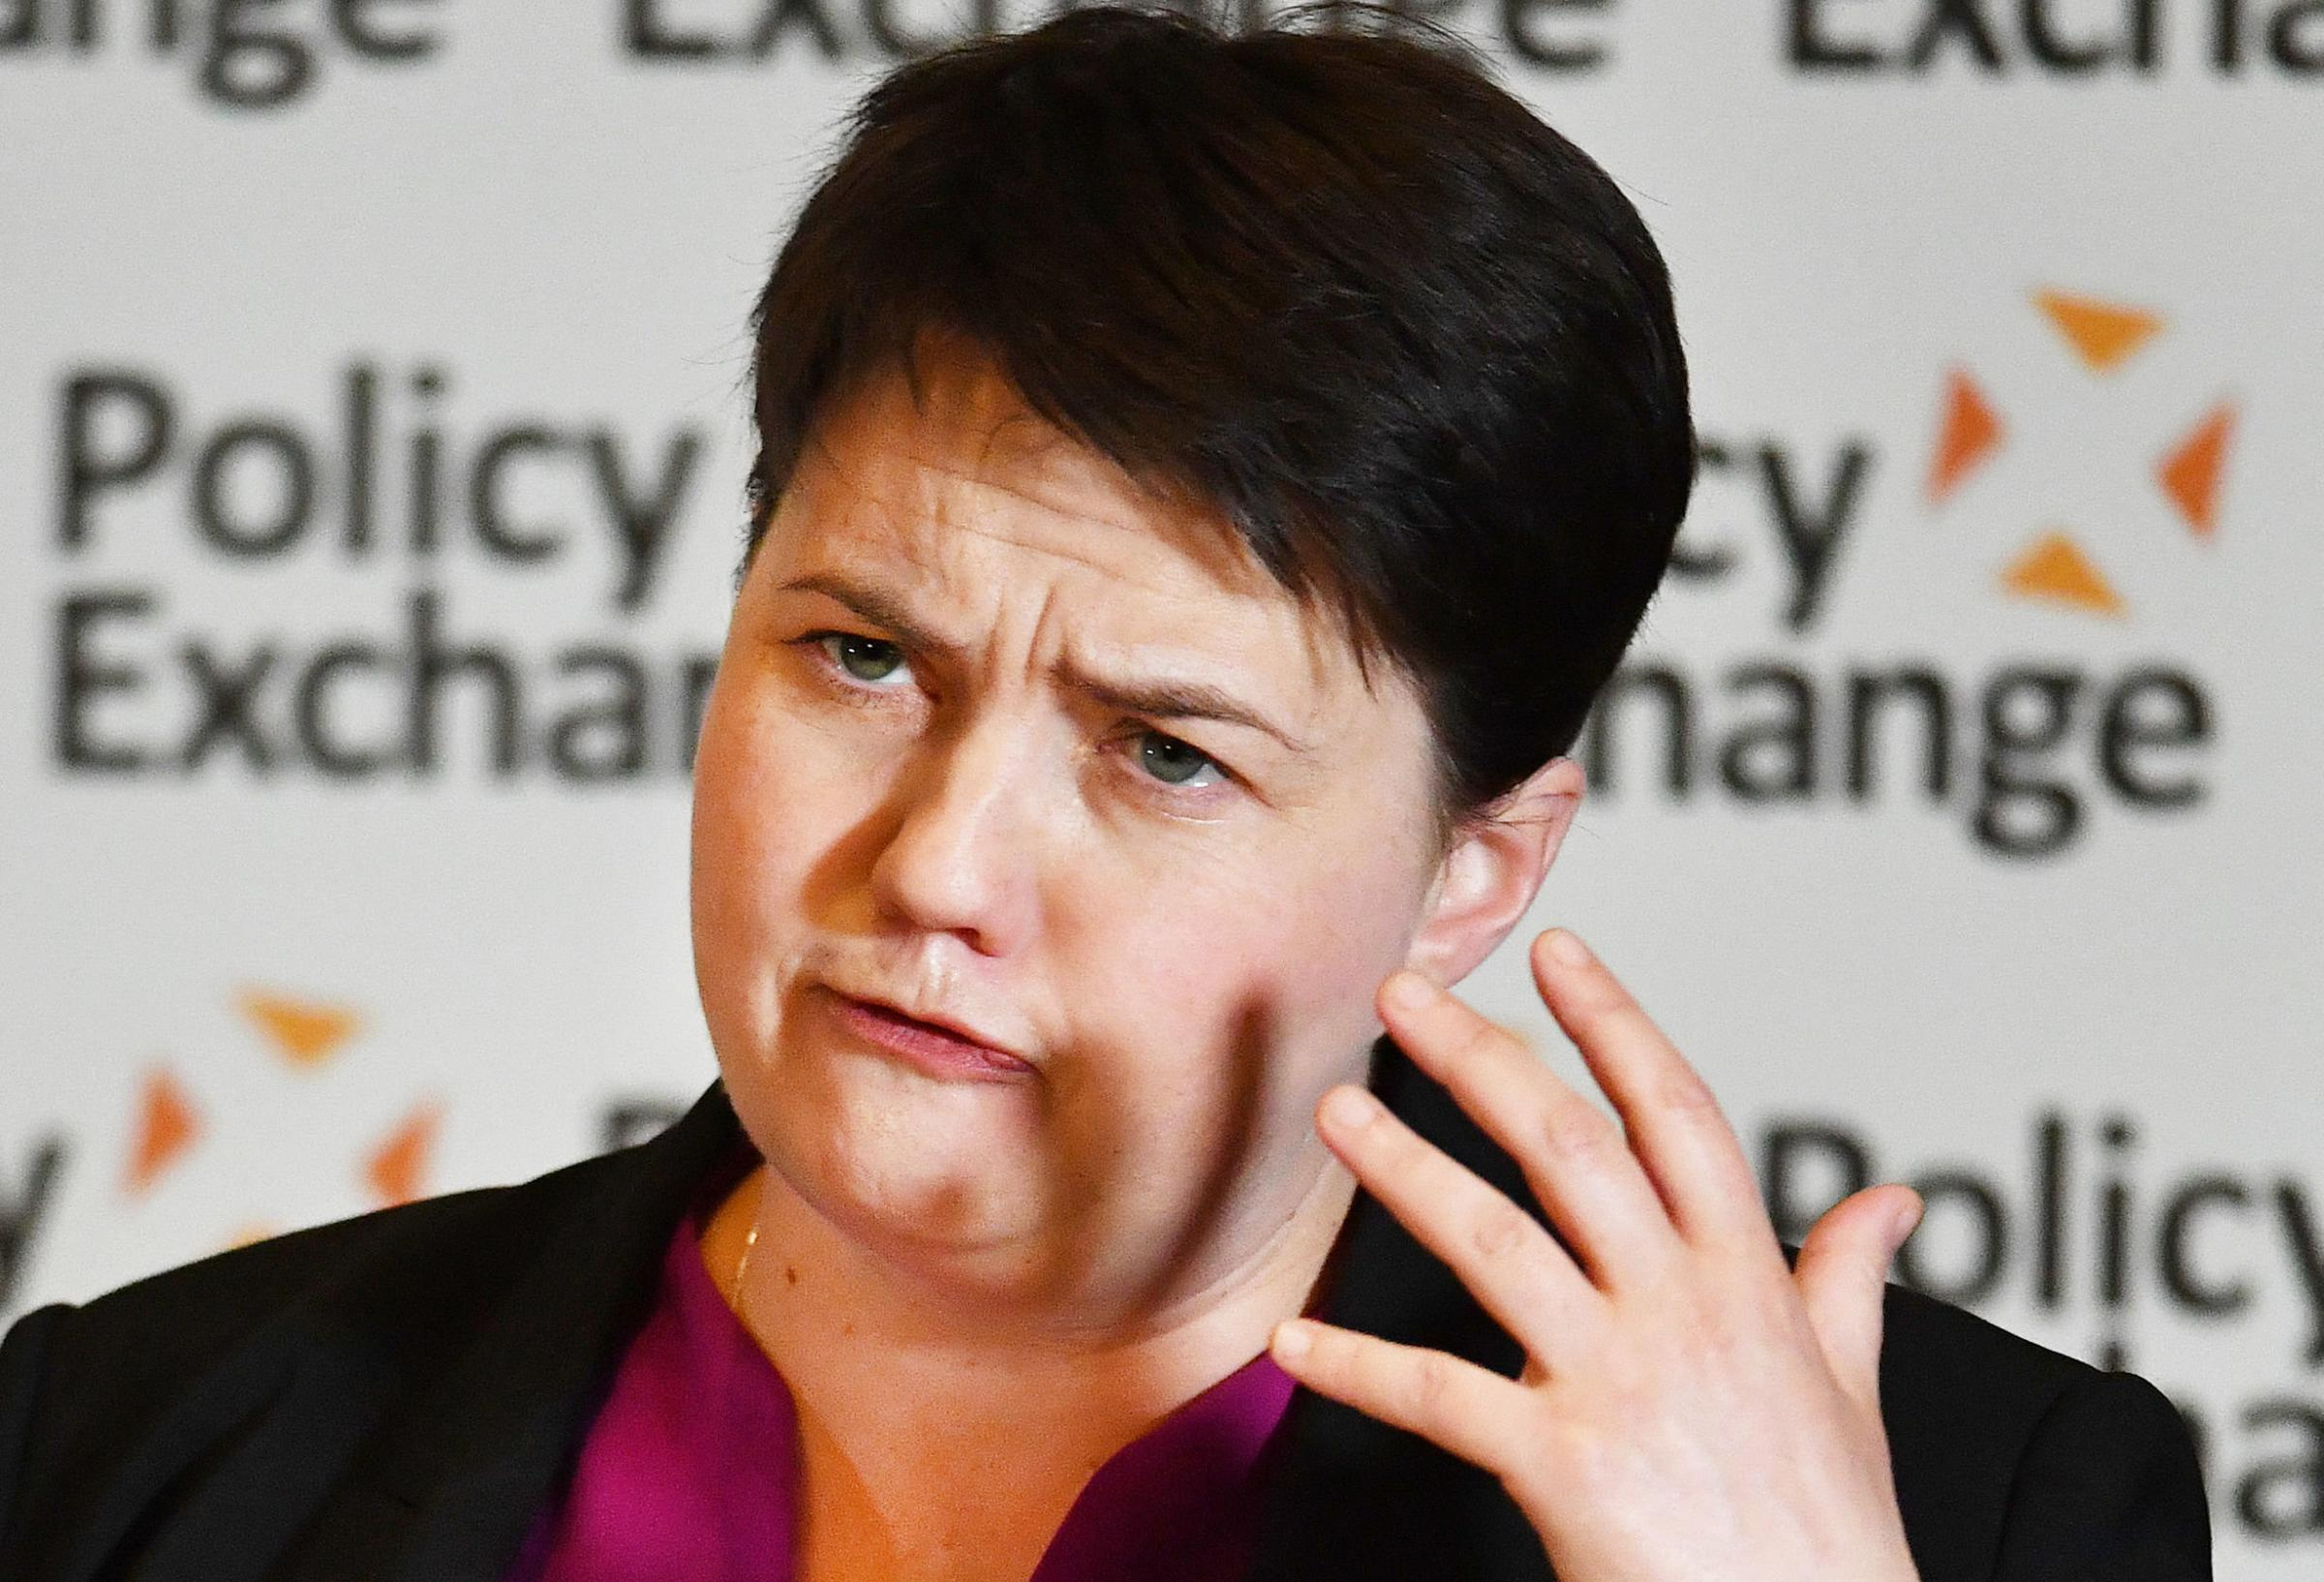 Scottish Conservative leader Ruth Davidson during her address to the policy Exchange conference titled The Union and Unionism – Past, Present and Future